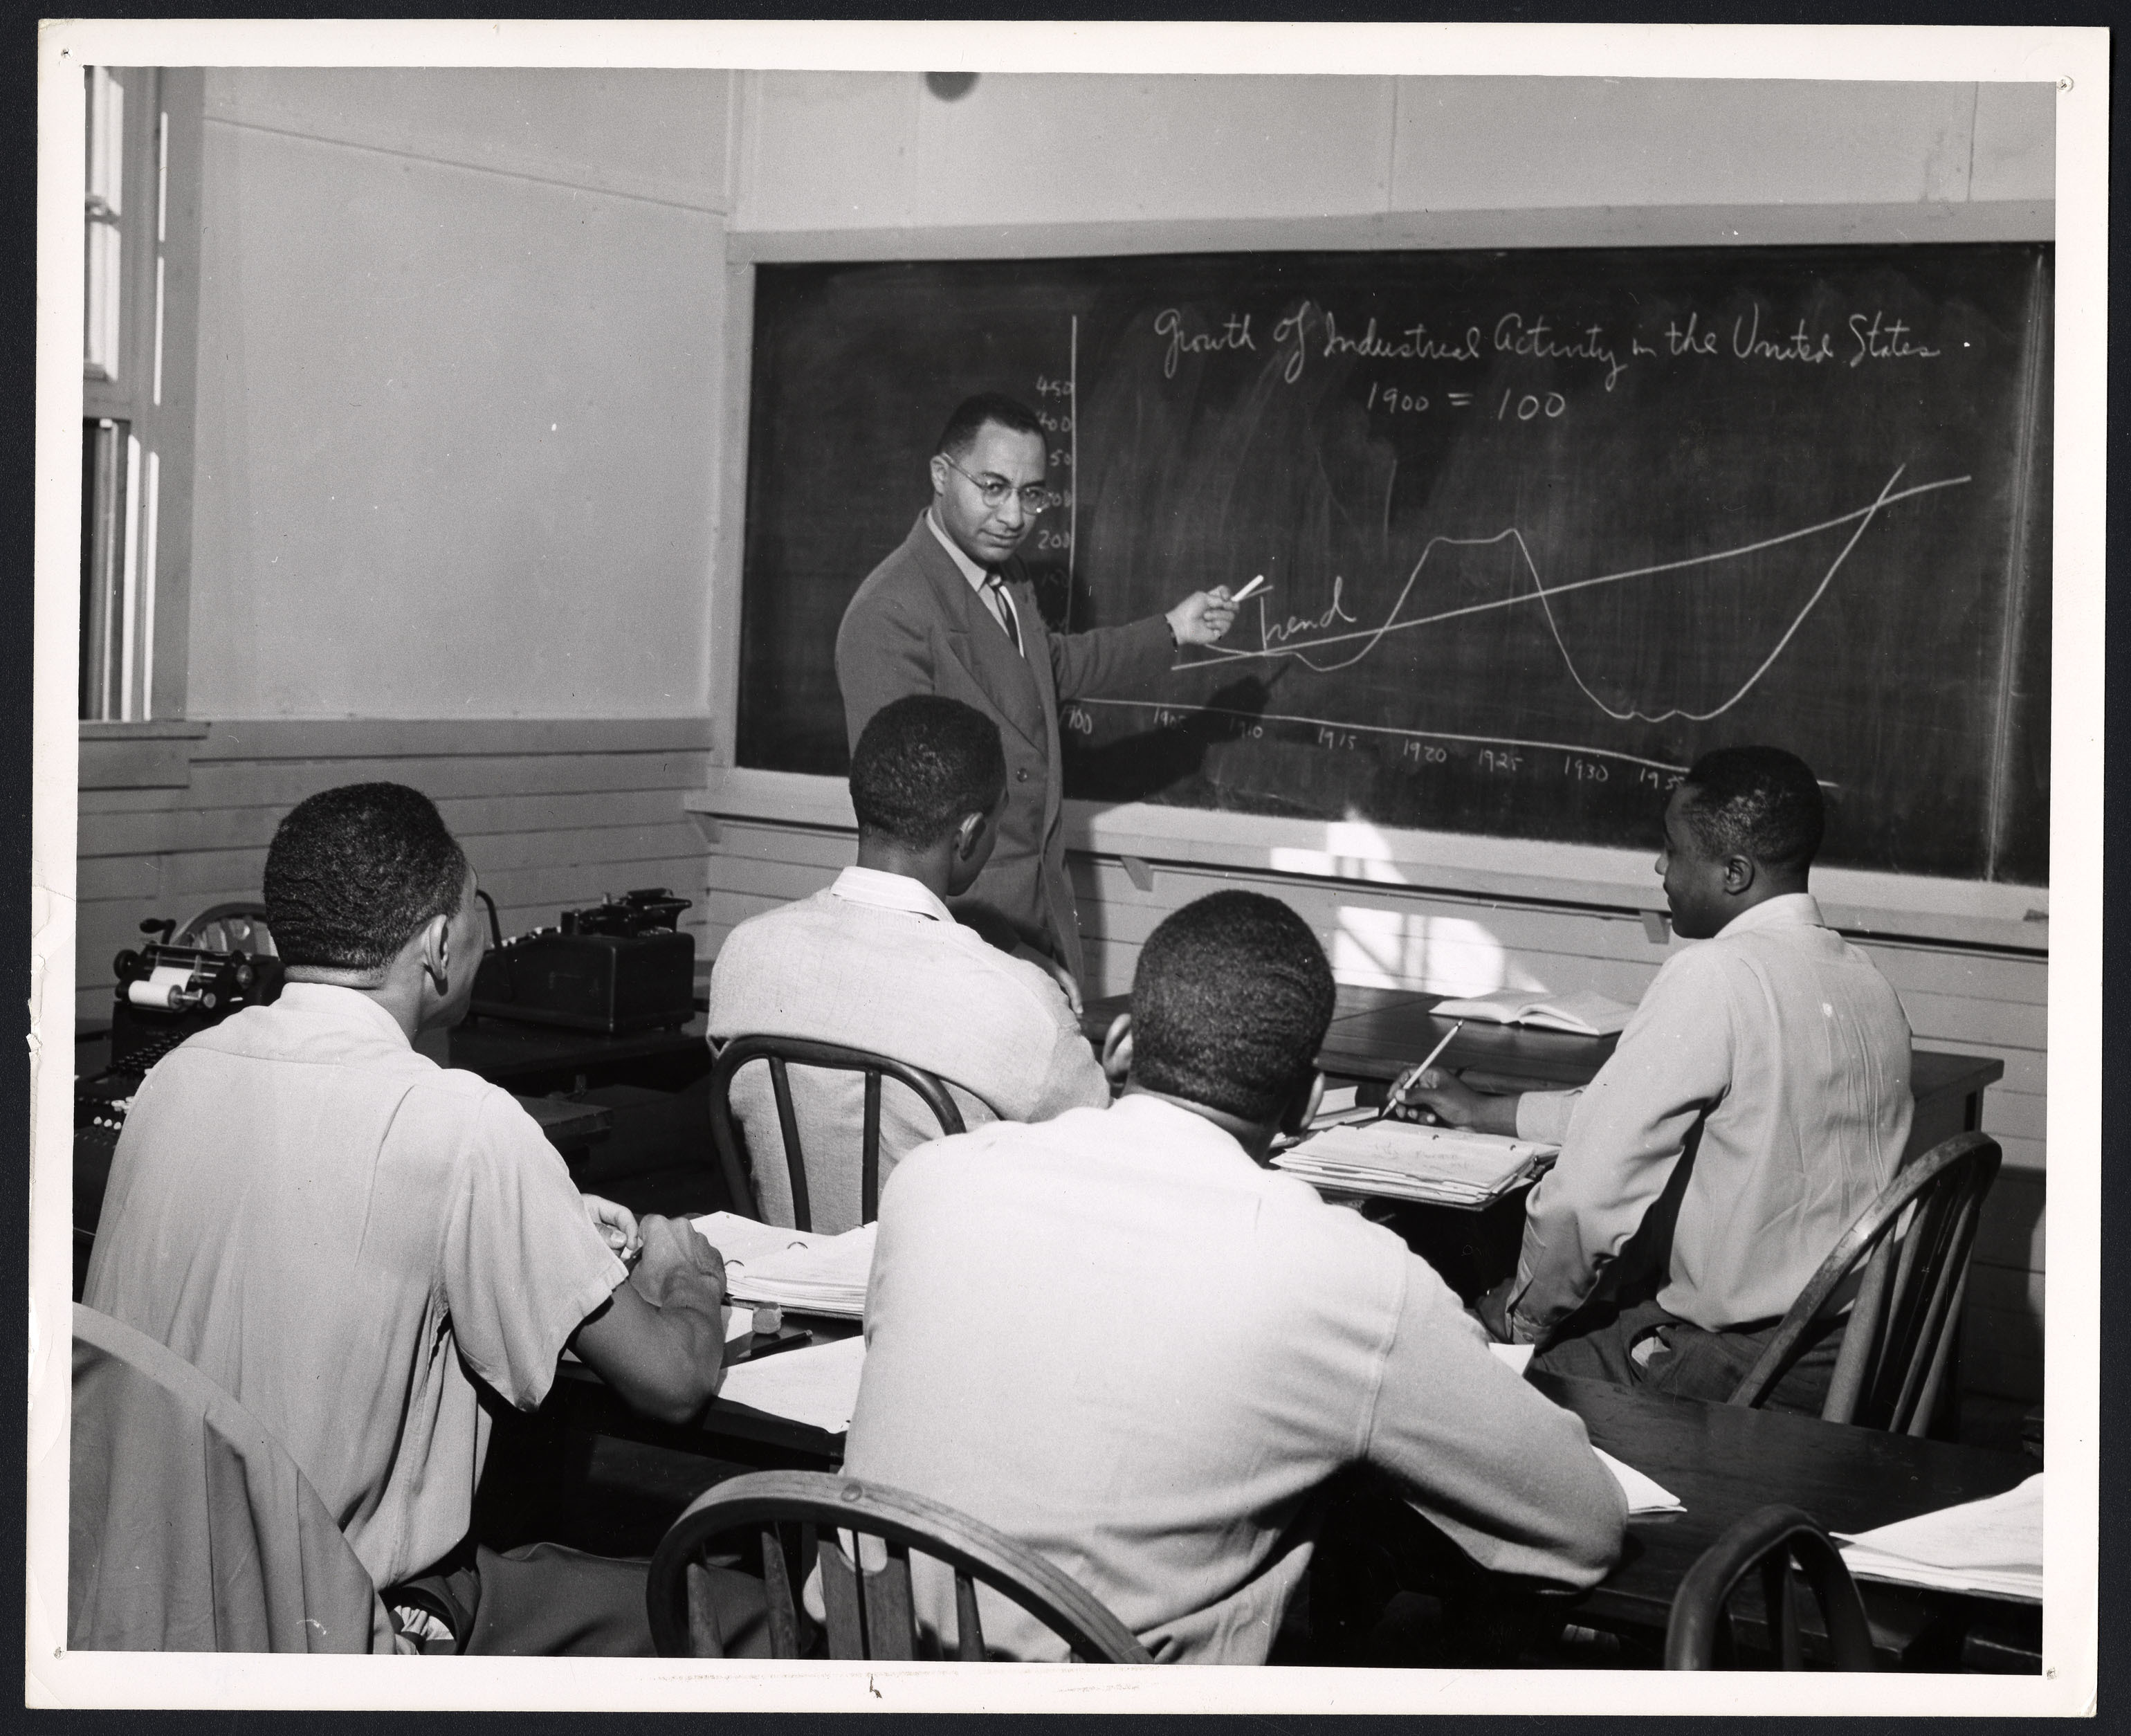 Unidentified Students and Professor in Classroom